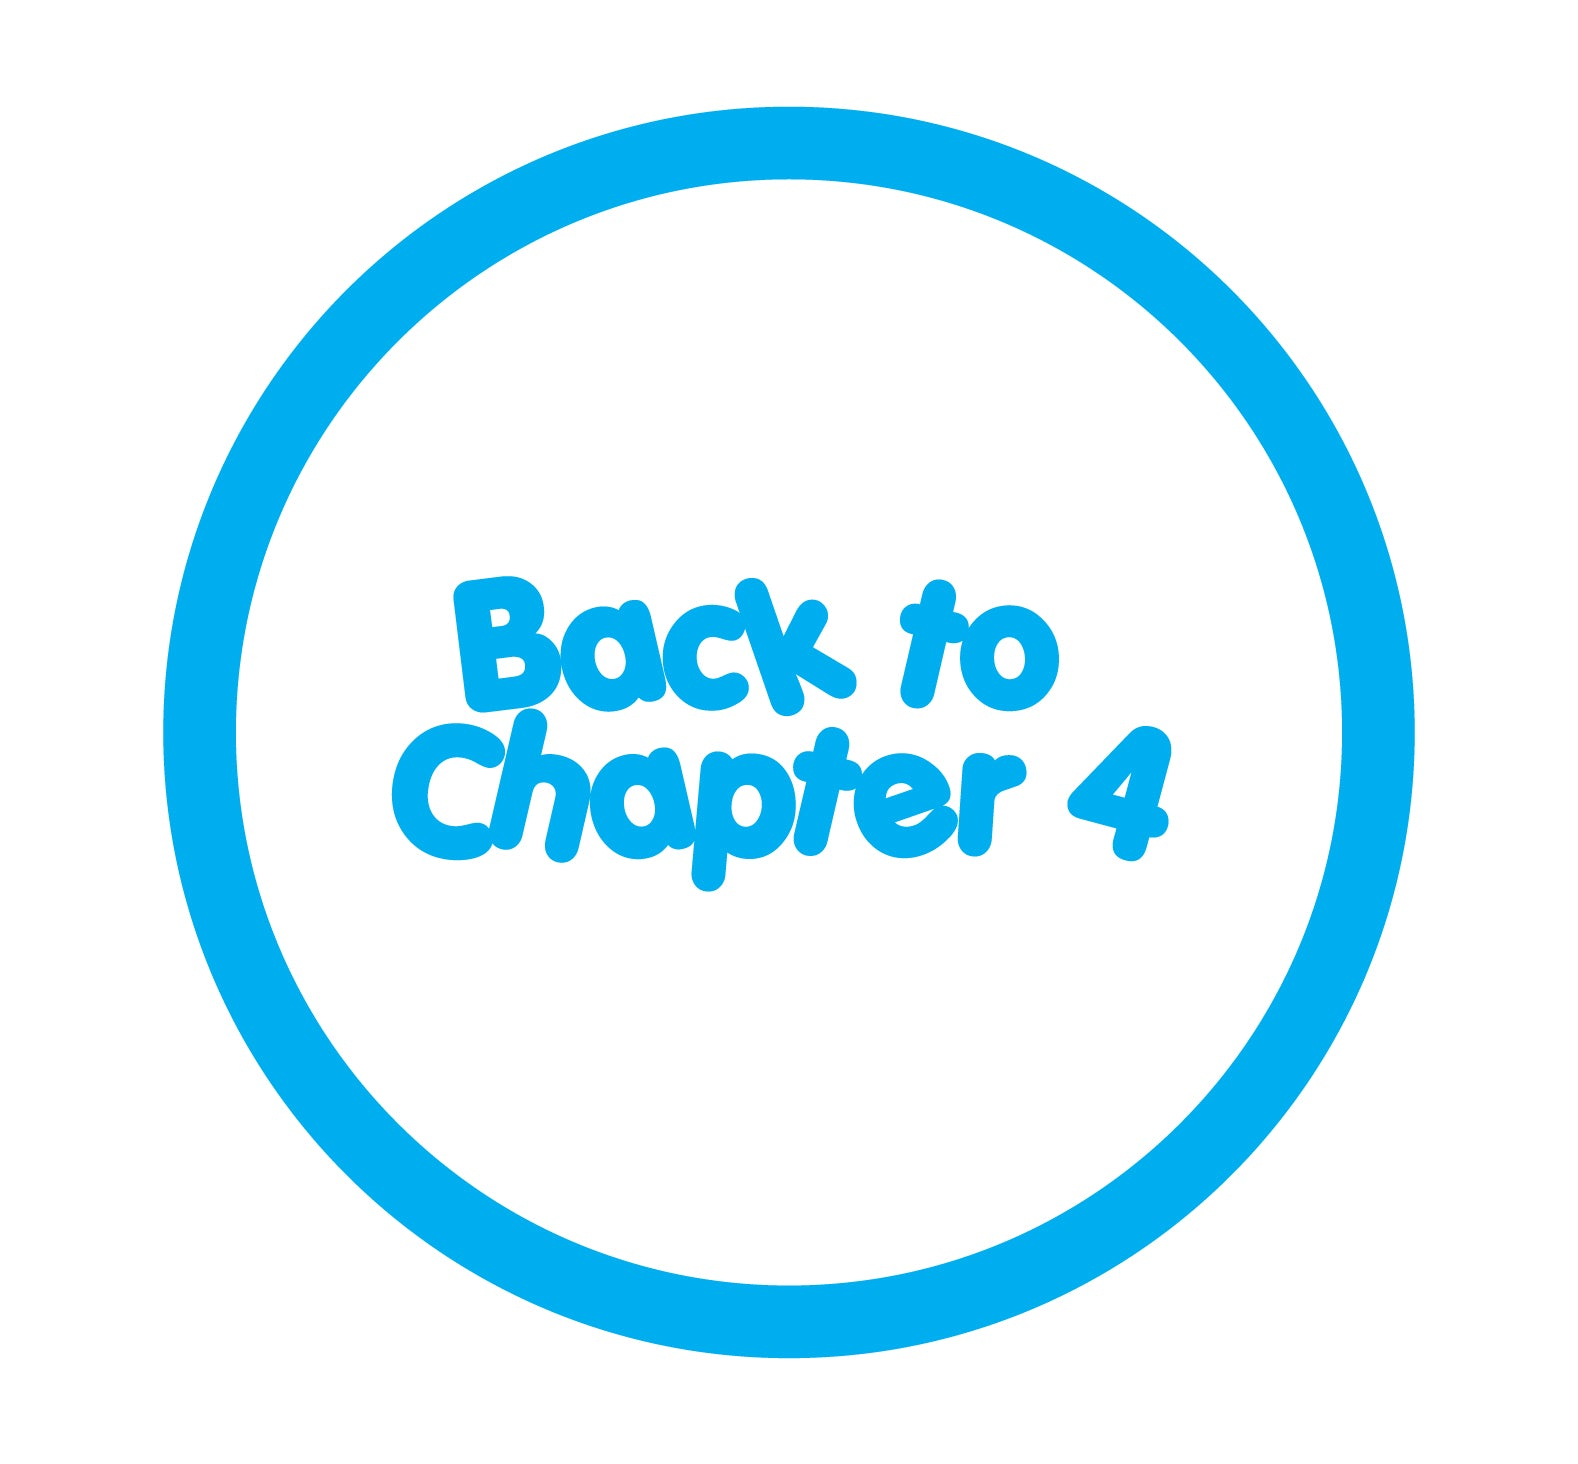 back tp chapter 4 icon button